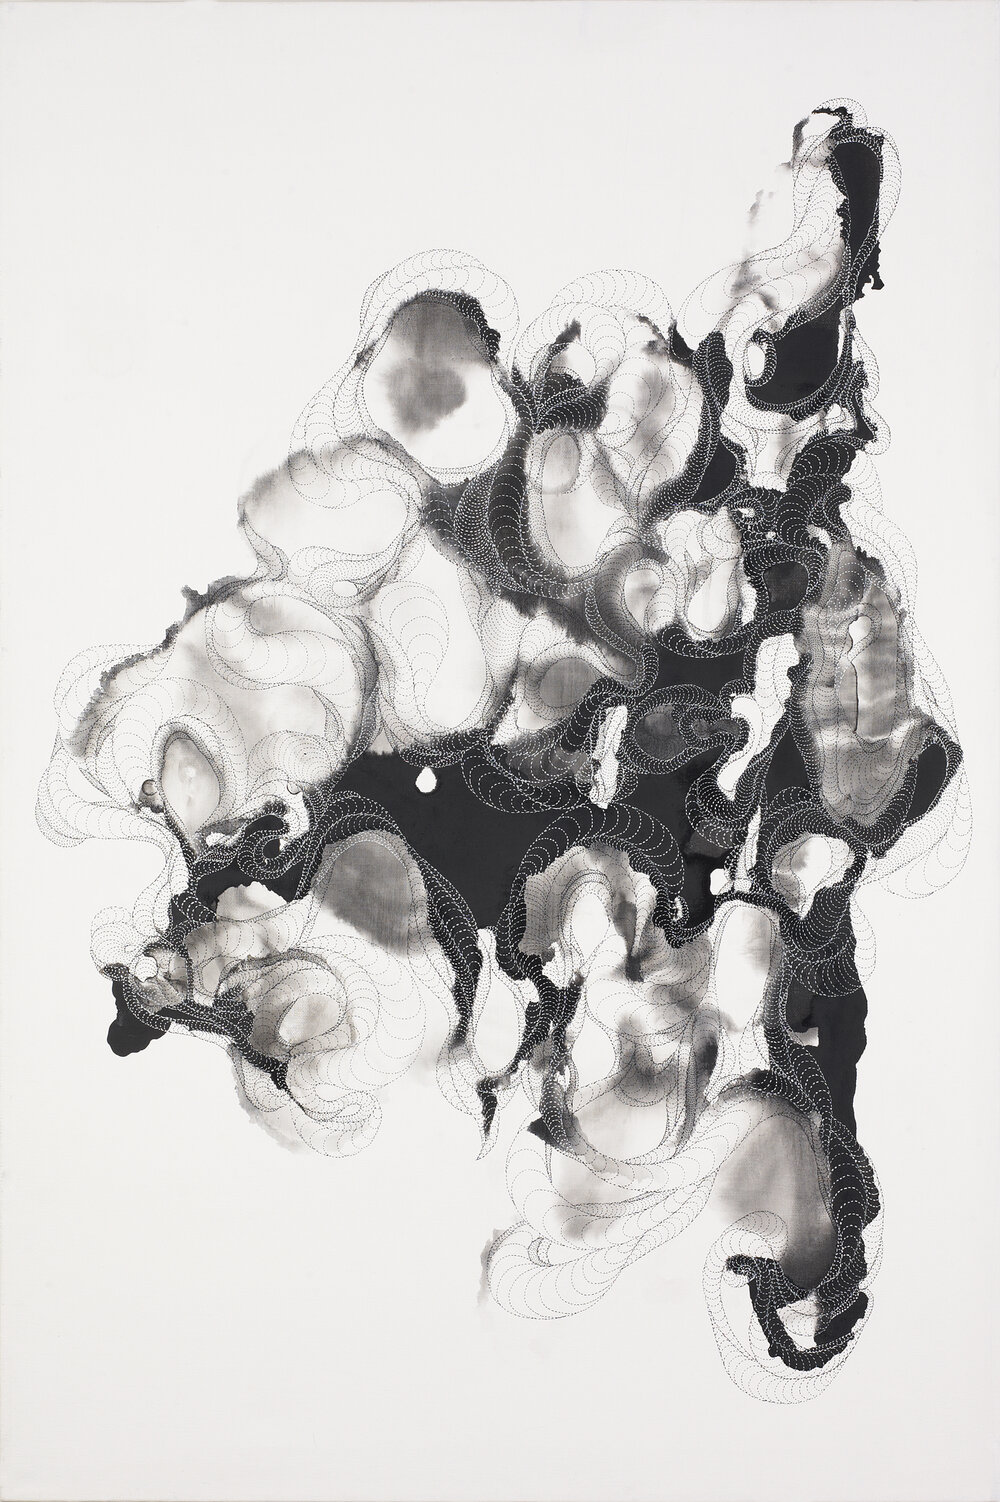 Accumulation 02, ink on canvas, 36x 24 in., 2012